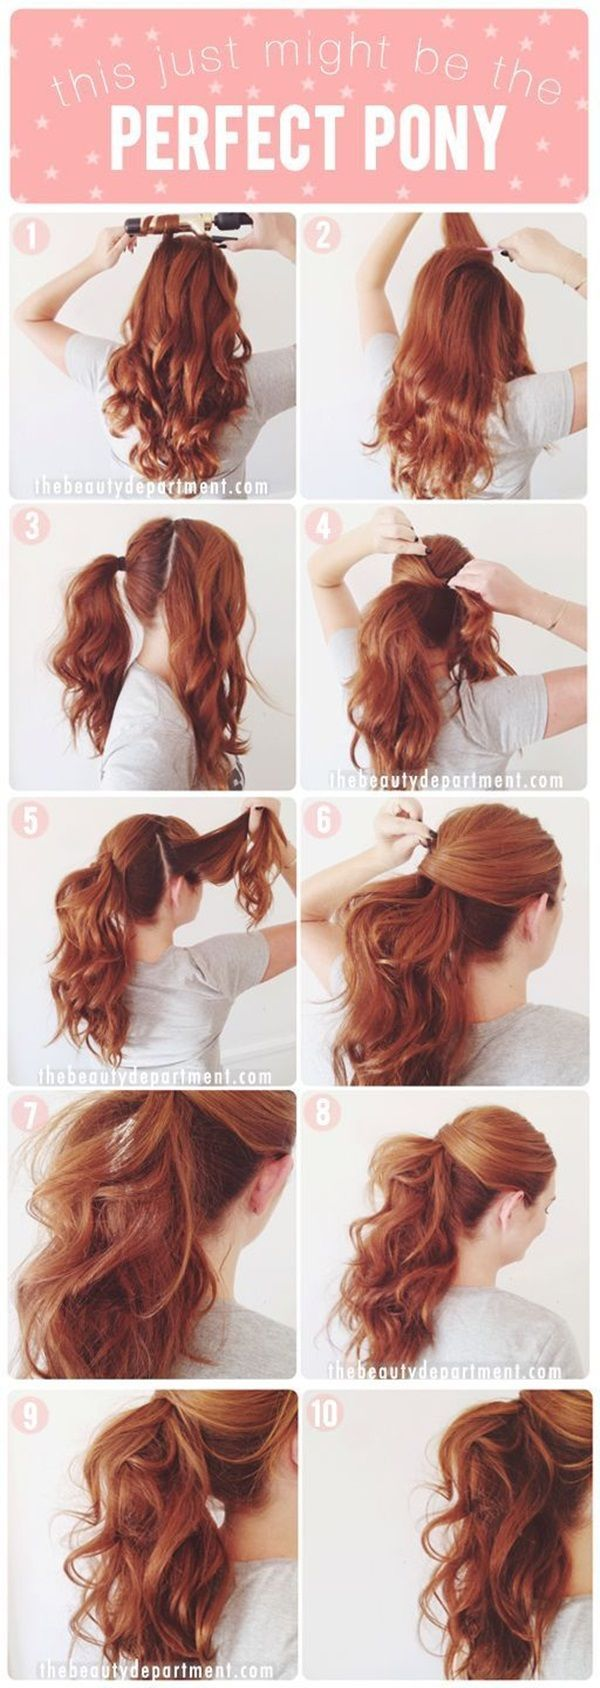 Swell 1000 Ideas About Diy Hairstyles On Pinterest Easy Diy Hairstyles For Men Maxibearus